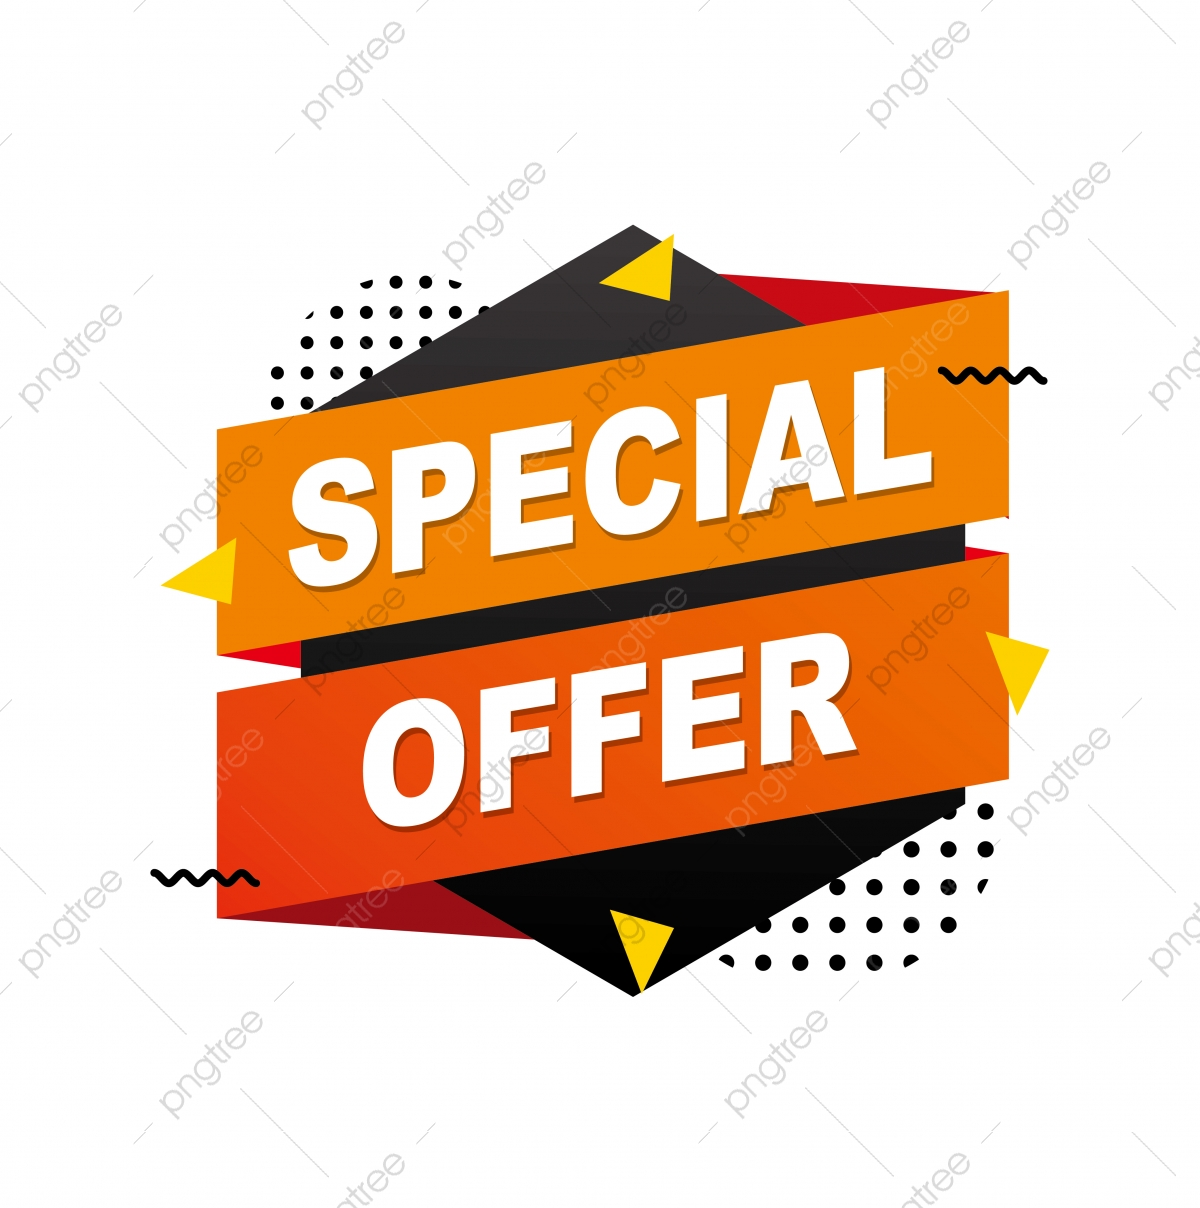 Special Offer Png Images Vector And Psd Files Free Download On Pngtree